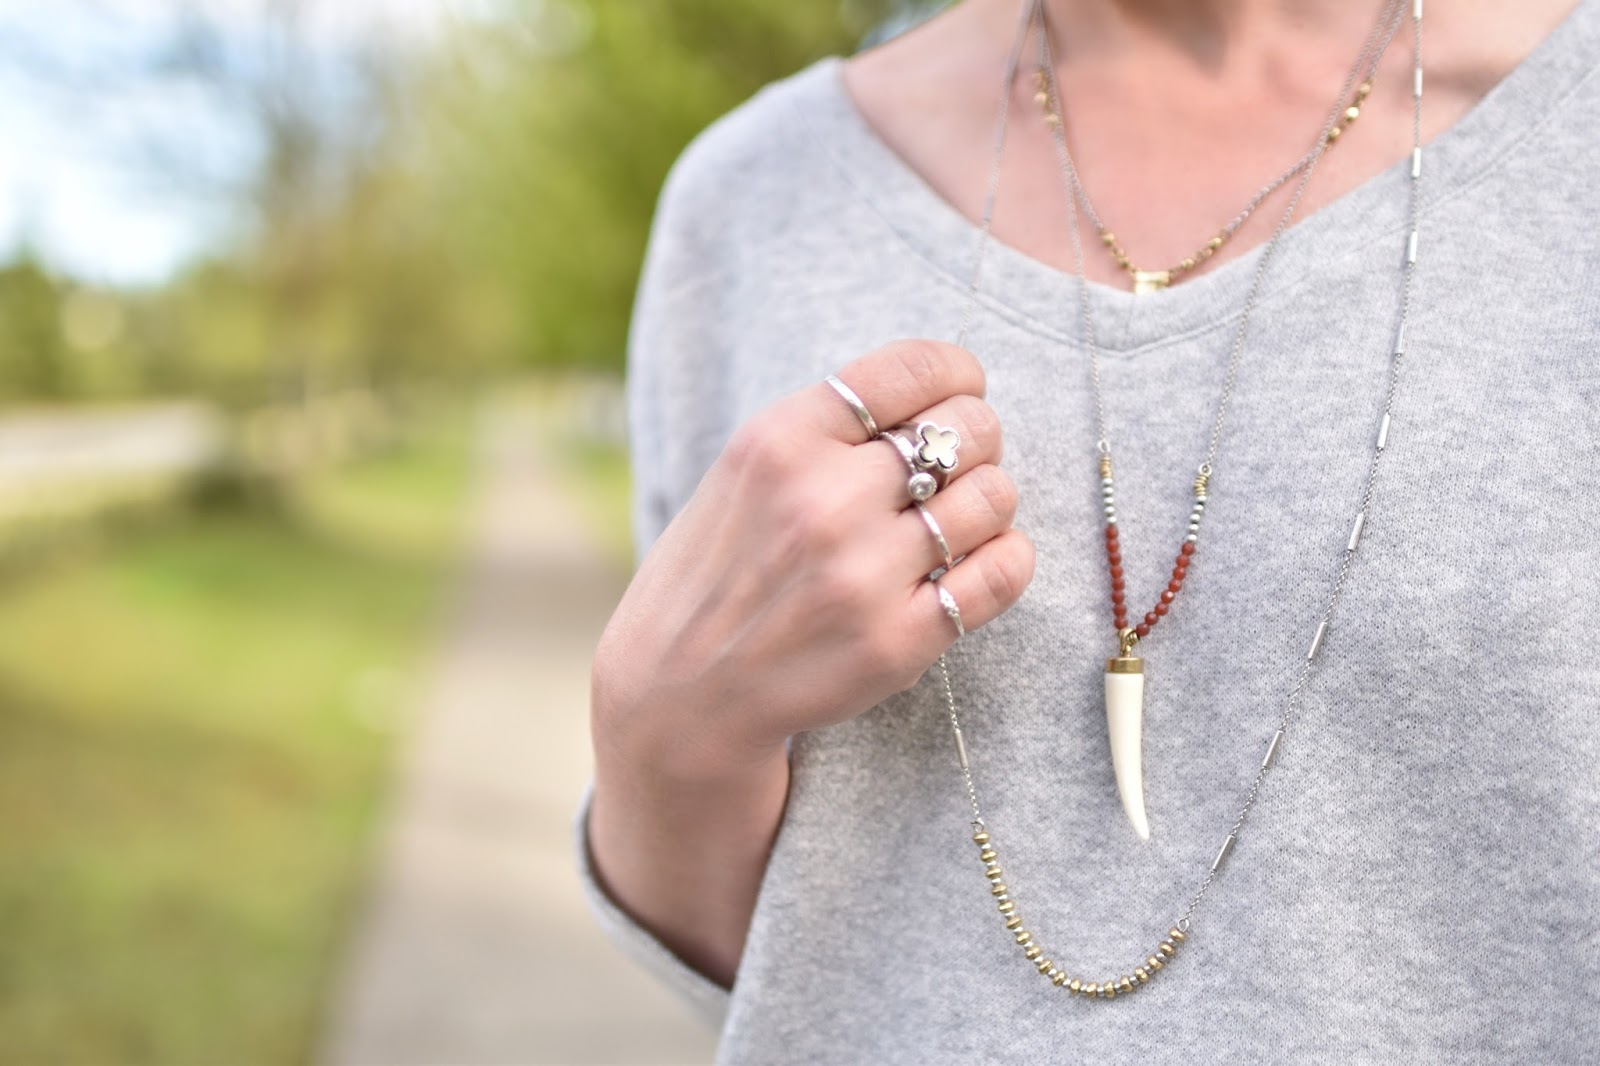 Monika Faulkner outfit inspiration - v-neck sweatshirt, layered necklaces and rings